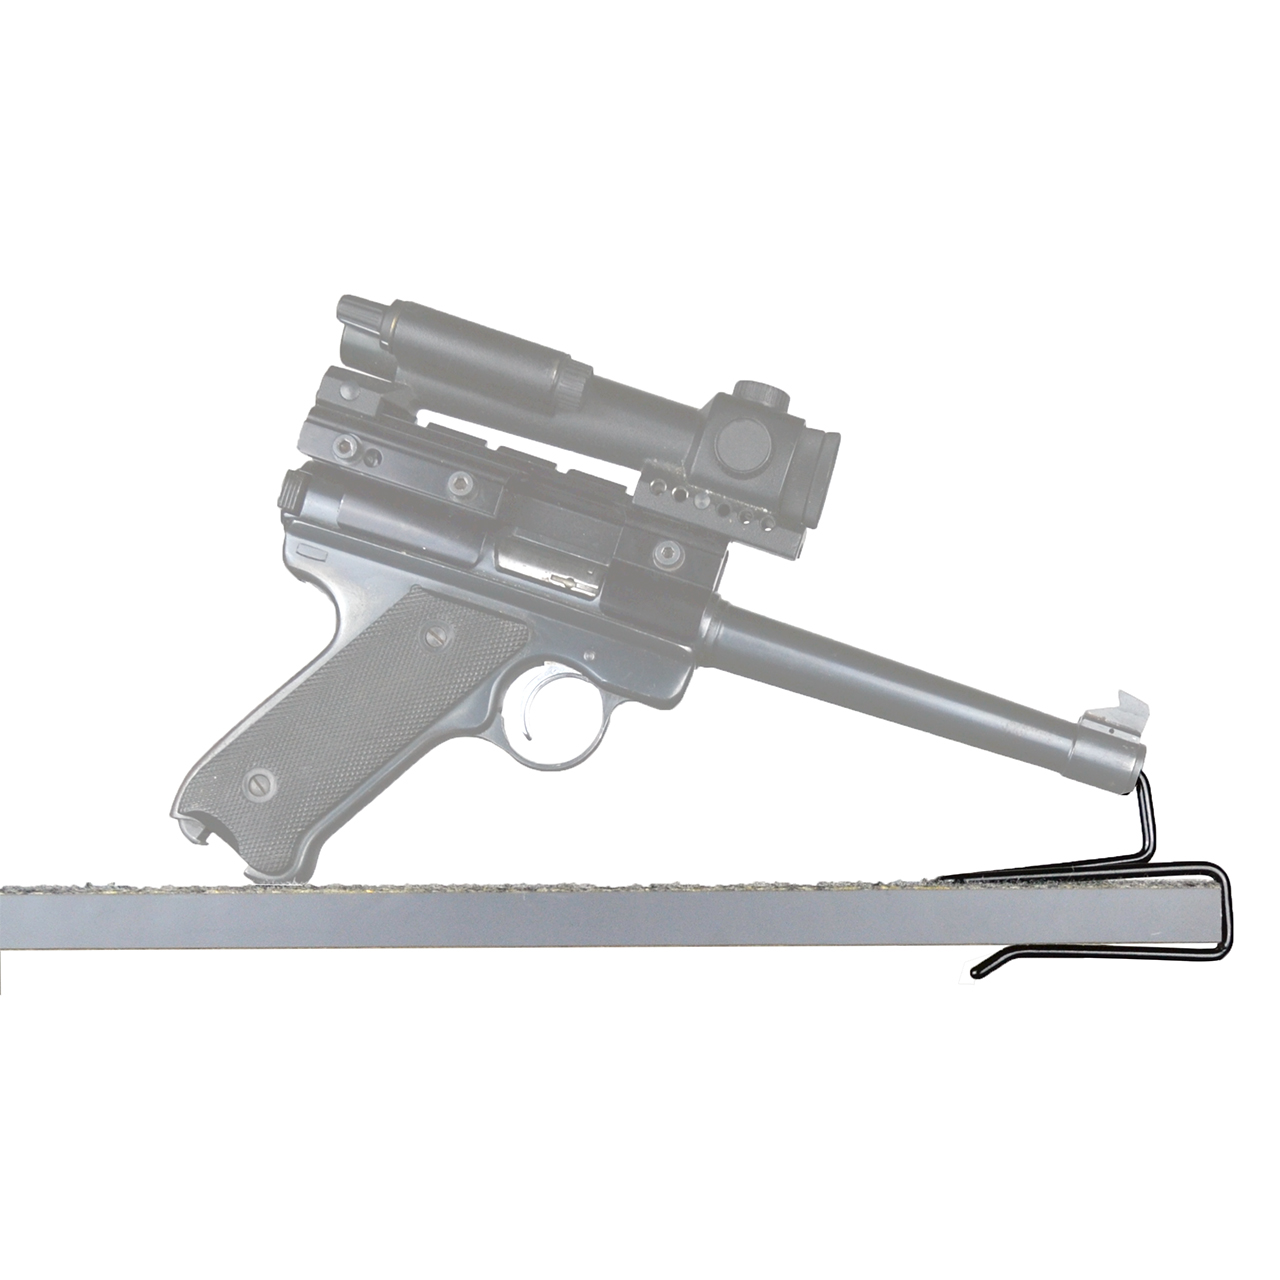 back-over-handgun-hangers.jpg